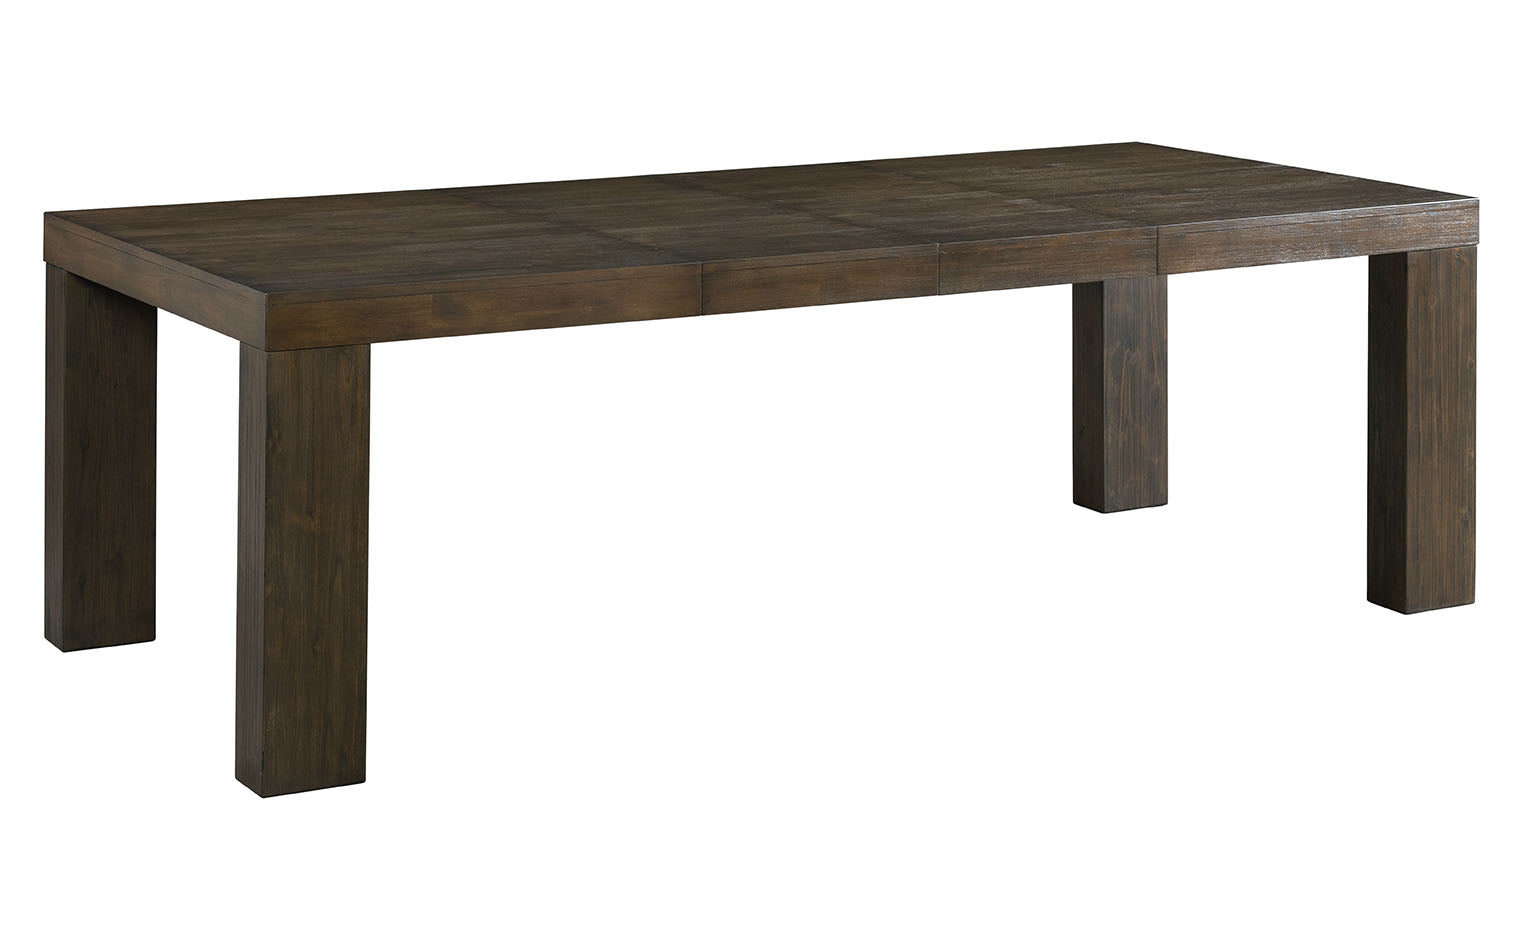 Brayden Dining Room Table - MJM Furniture